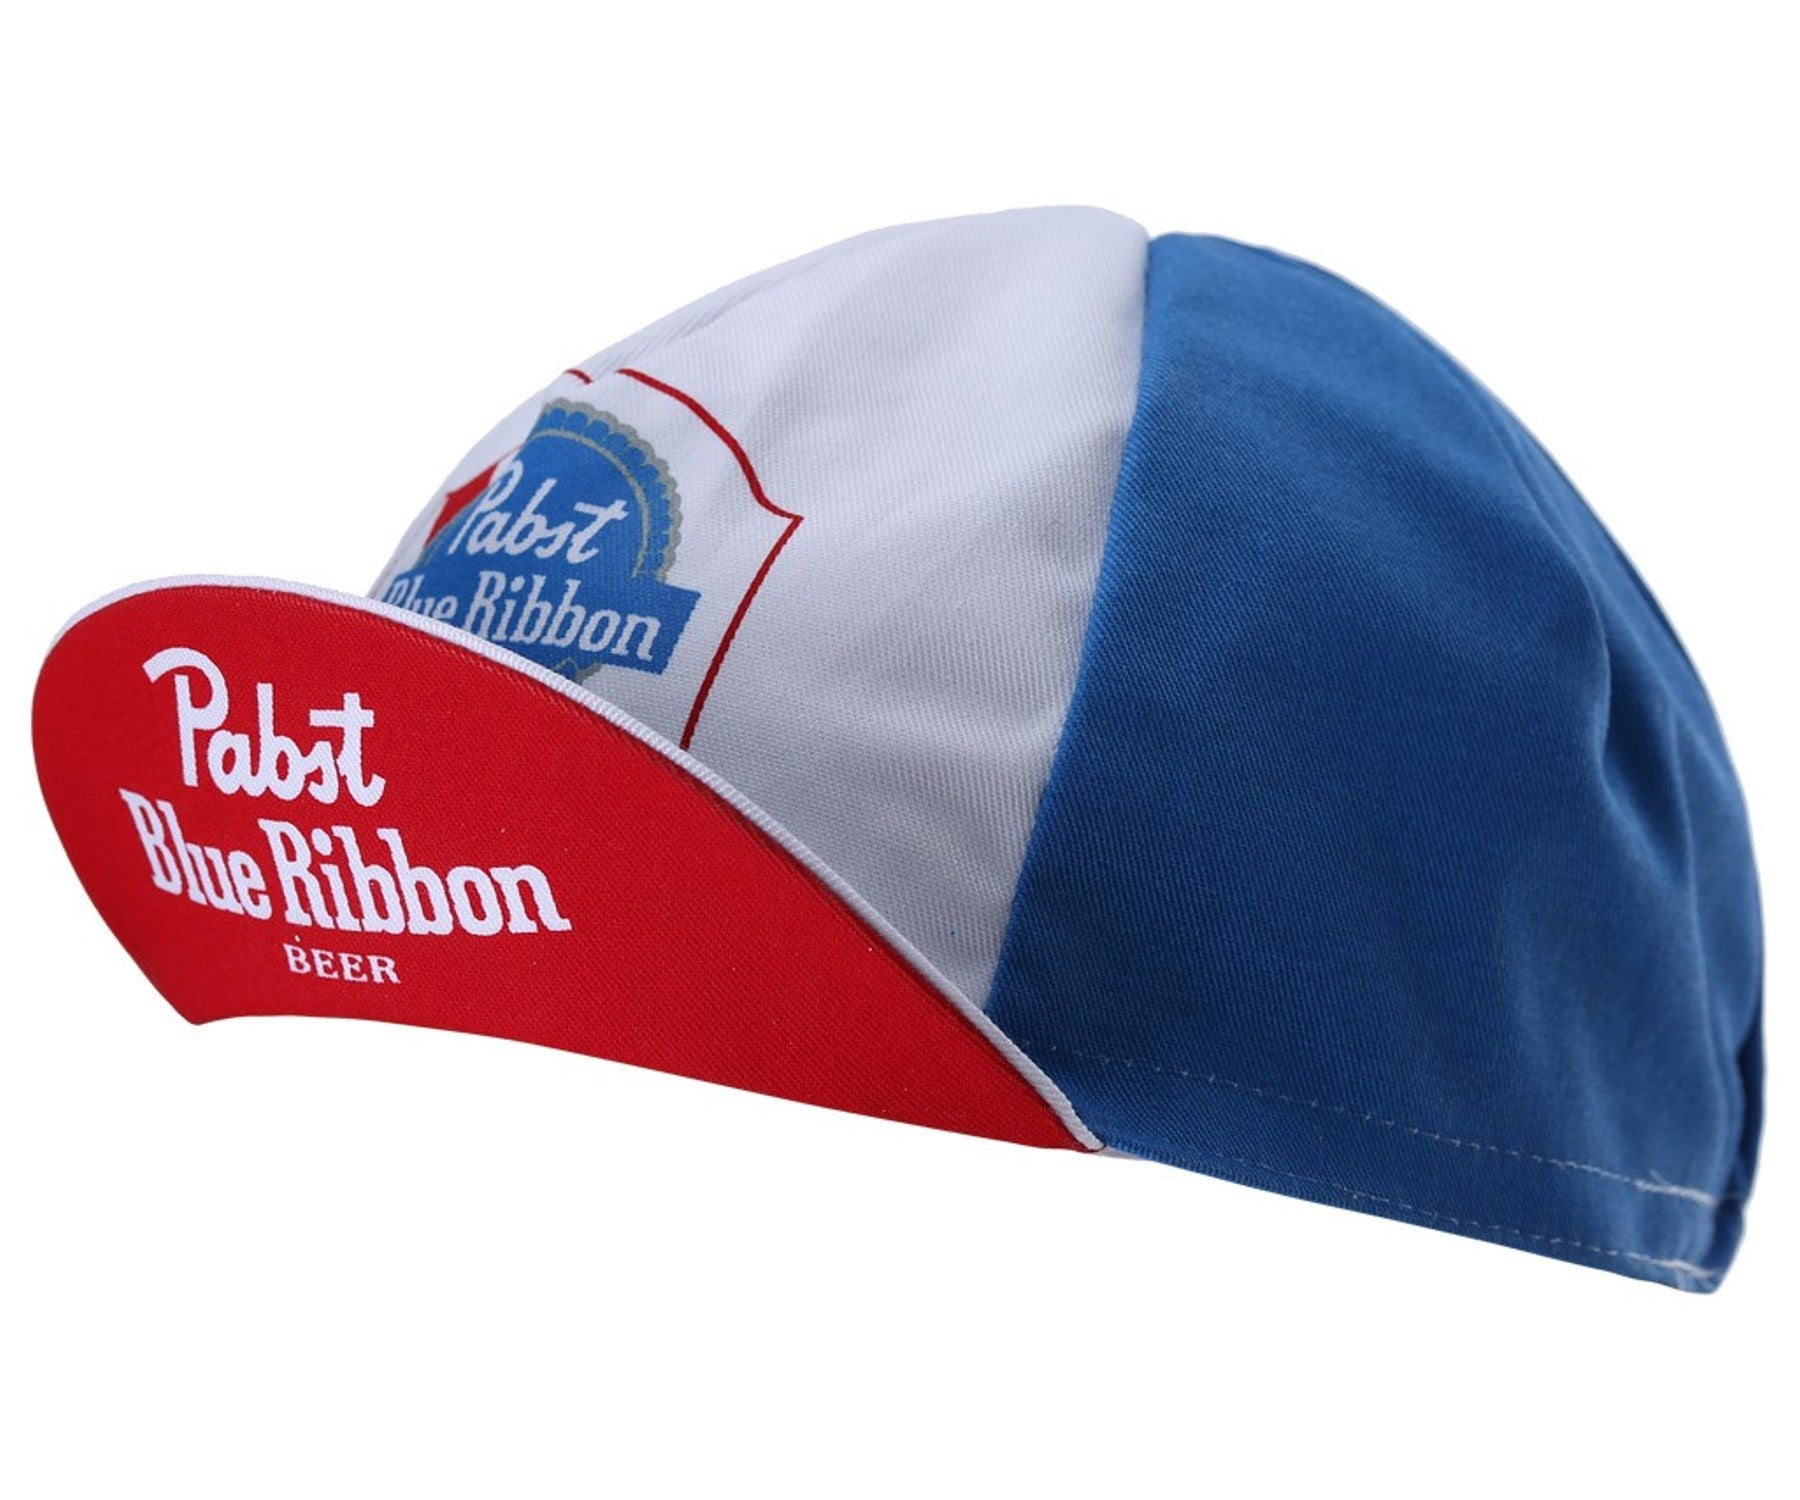 Pabst Blue Ribbon cycling cap - Retrogression